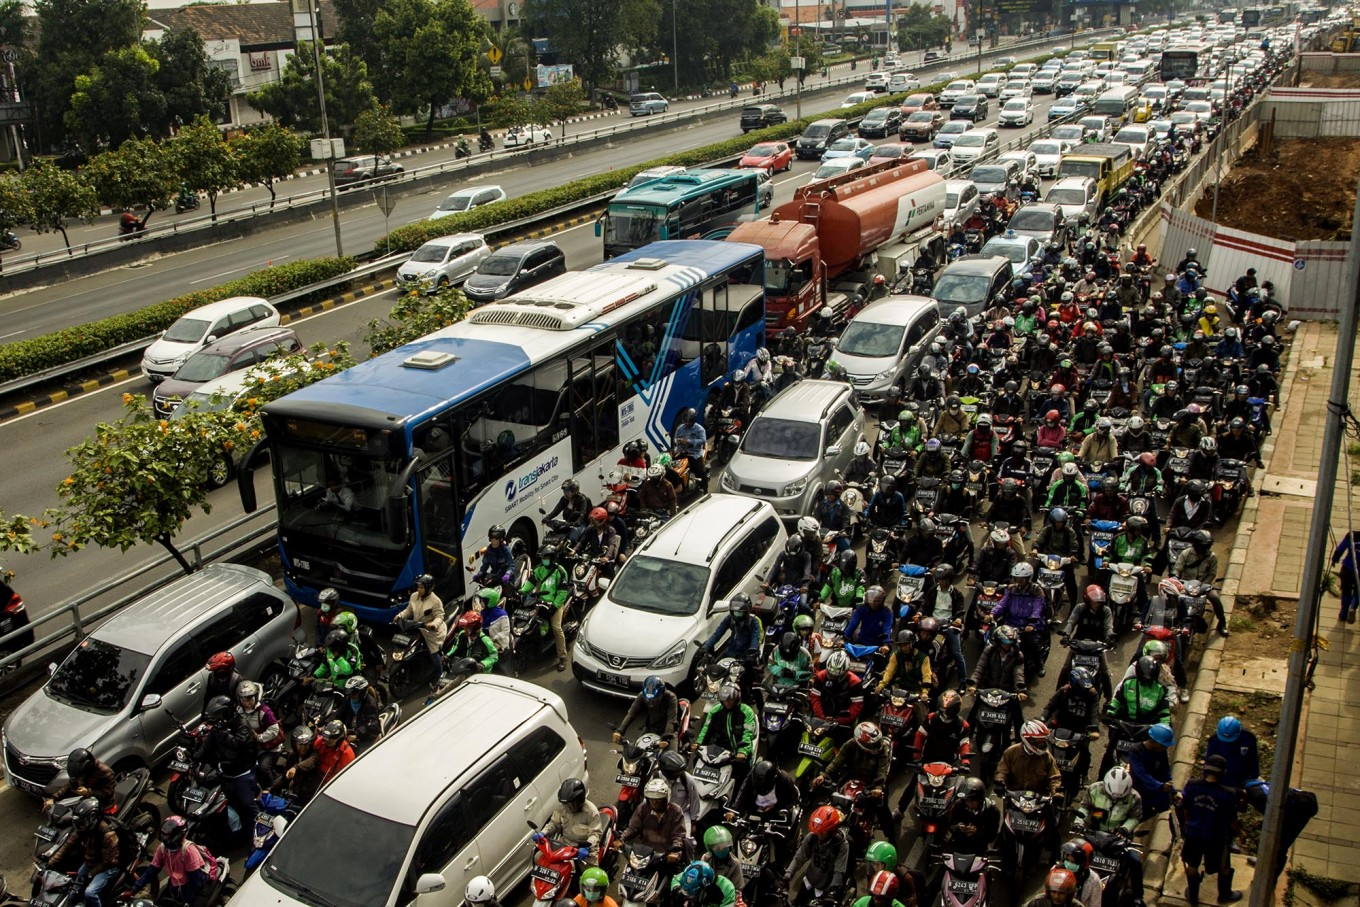 Jakartans spend 22 days in traffic jam per year: Survey